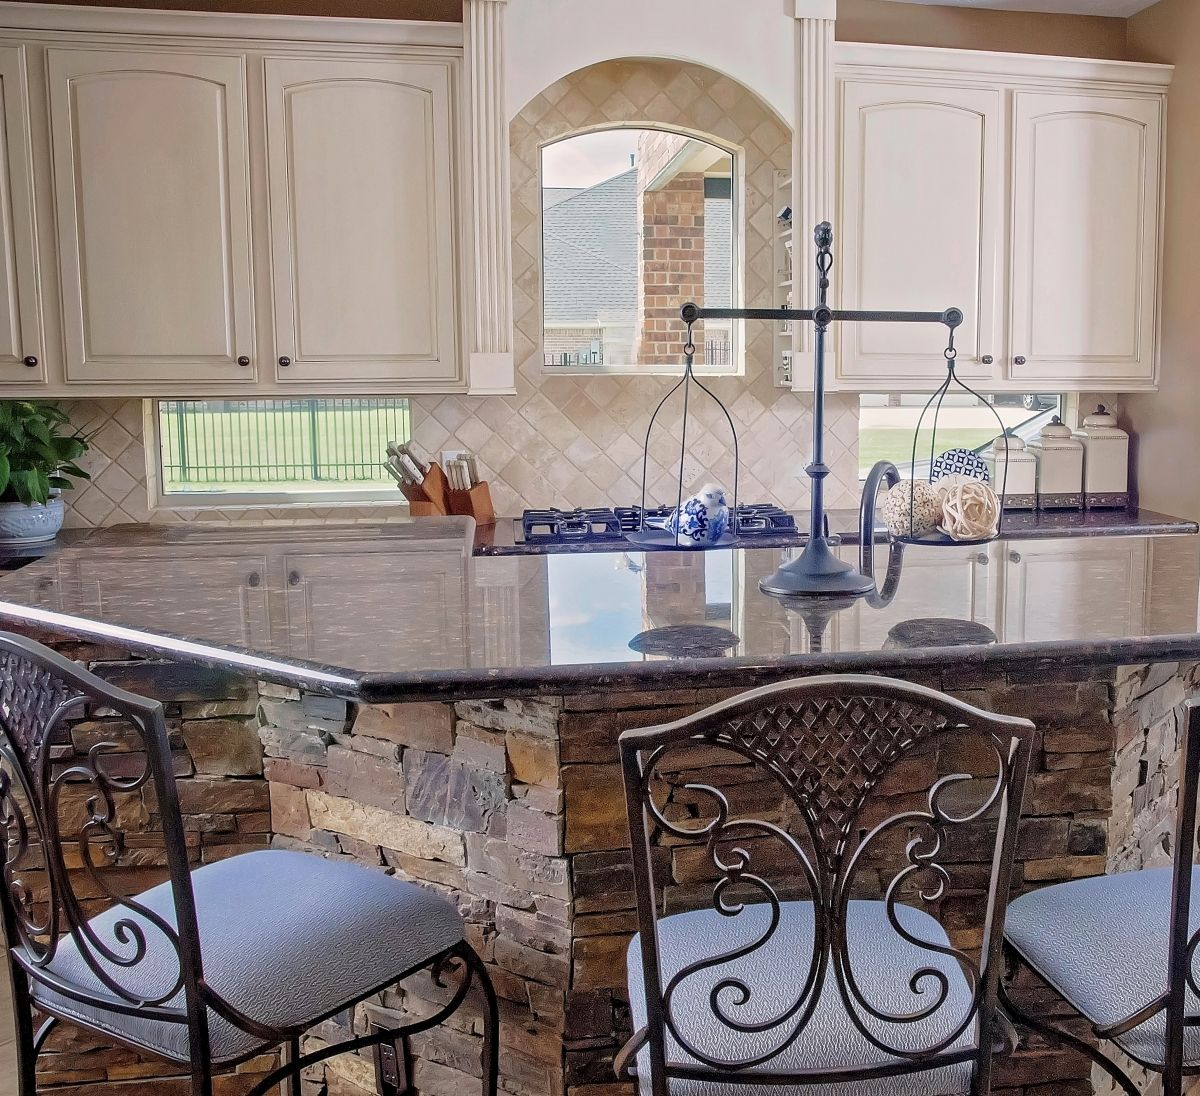 What Is The Right Cabinet For My Kitchen Kitchen Cabinet Design Kitchen Design Bathroom Construction